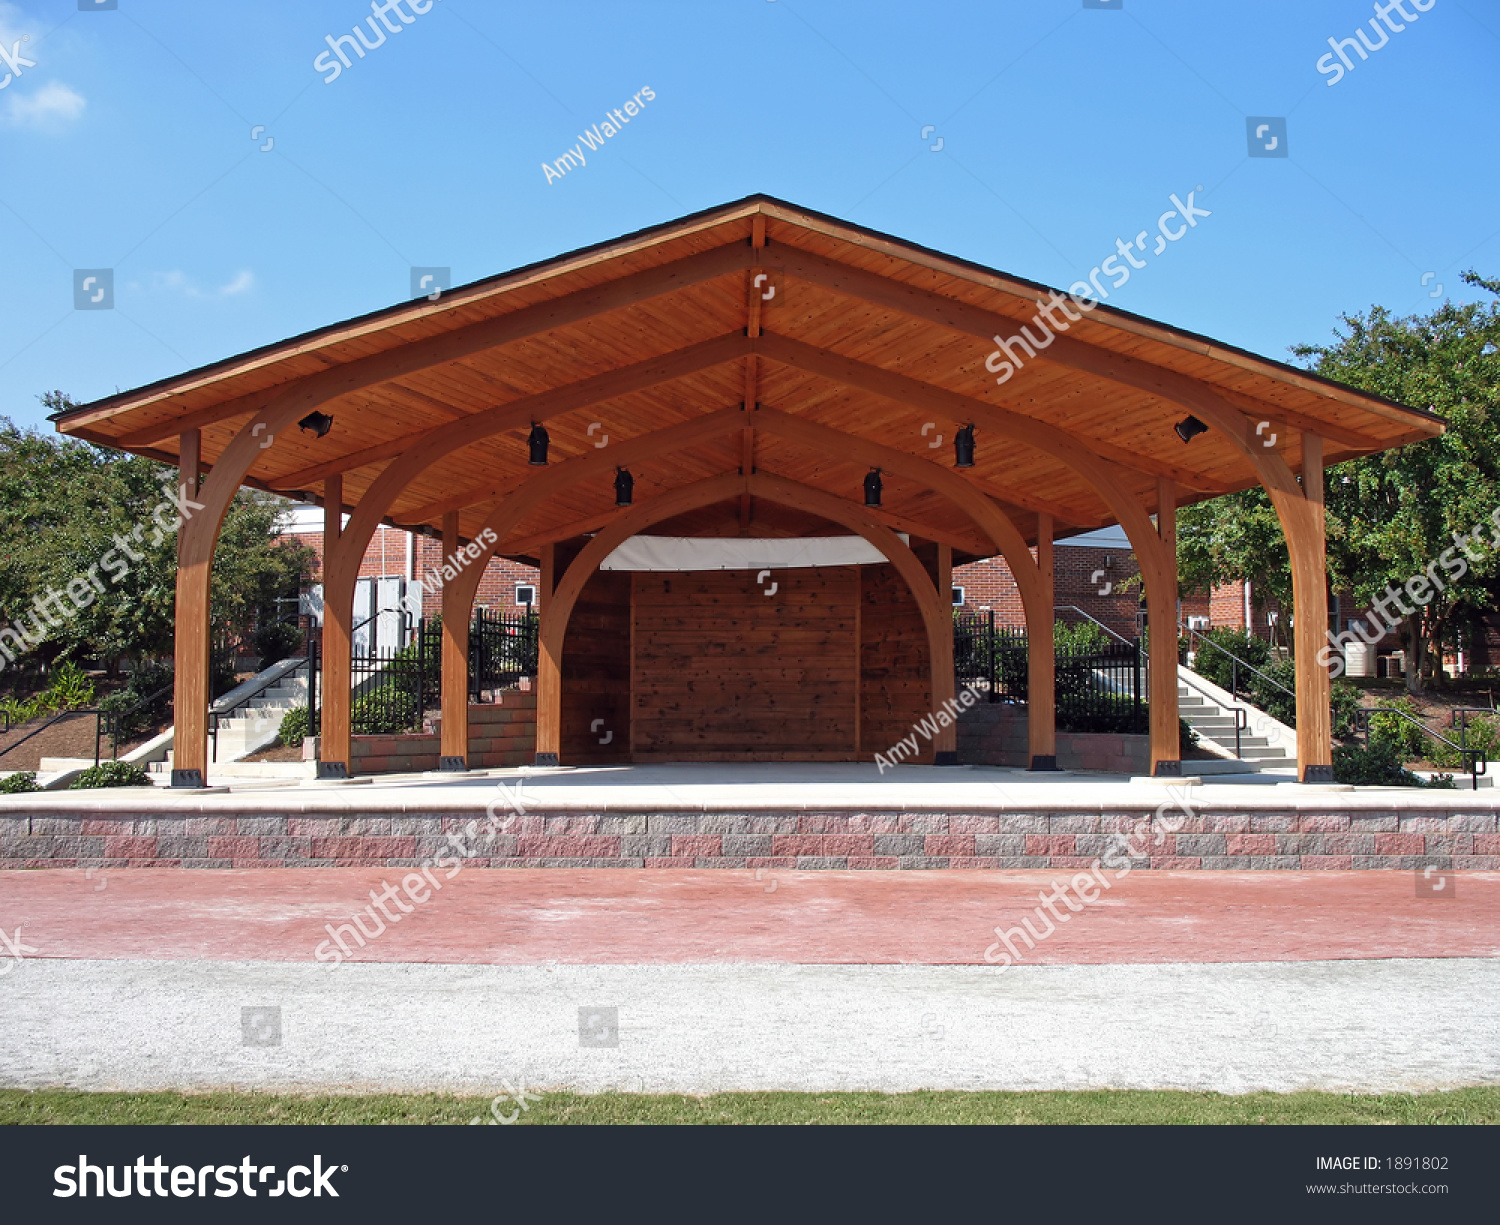 Wooden Outdoor Stage Amphitheater Park Stock Photo 1891802